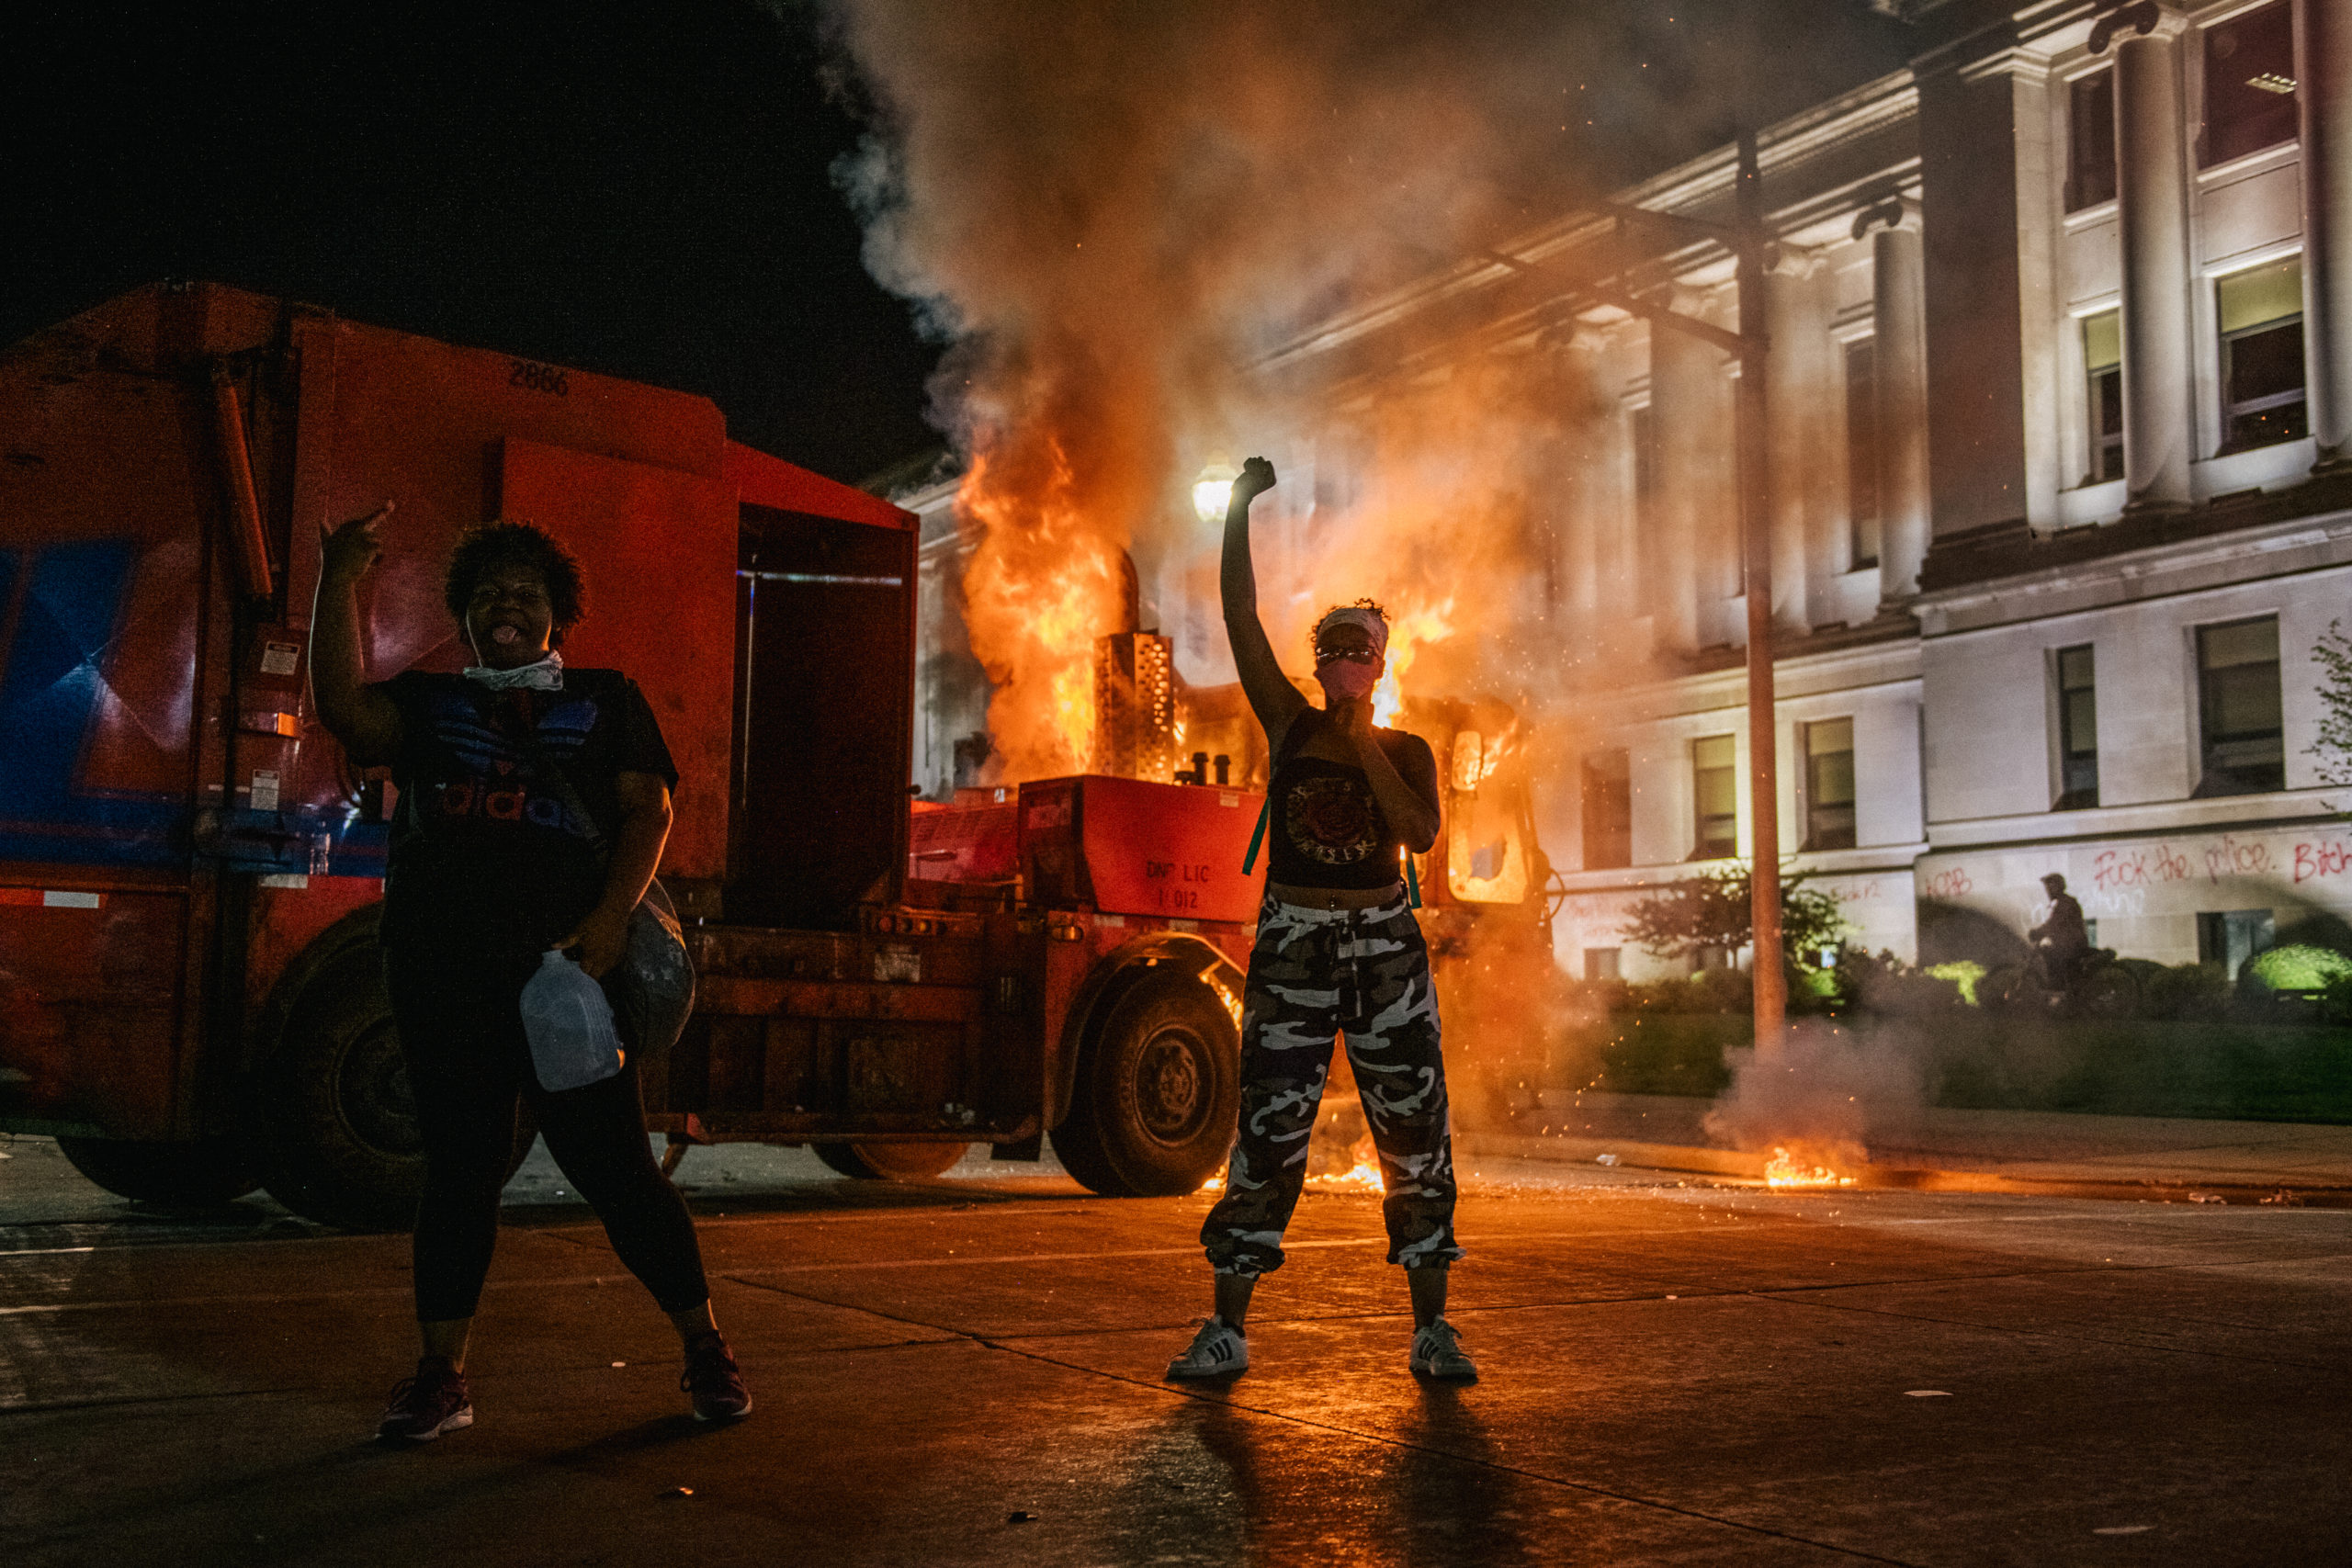 KENOSHA, WI - AUGUST 24: Demonstrators chant in front of a burning truck on August 24, 2020 in Kenosha, Wisconsin. This is the second night of rioting after the shooting of Jacob Blake, 29, on August 23. Blake was shot multiple times in the back by Wisconsin police officers after attempting to enter into the drivers side of a vehicle. (Photo by Brandon Bell/Getty Images)